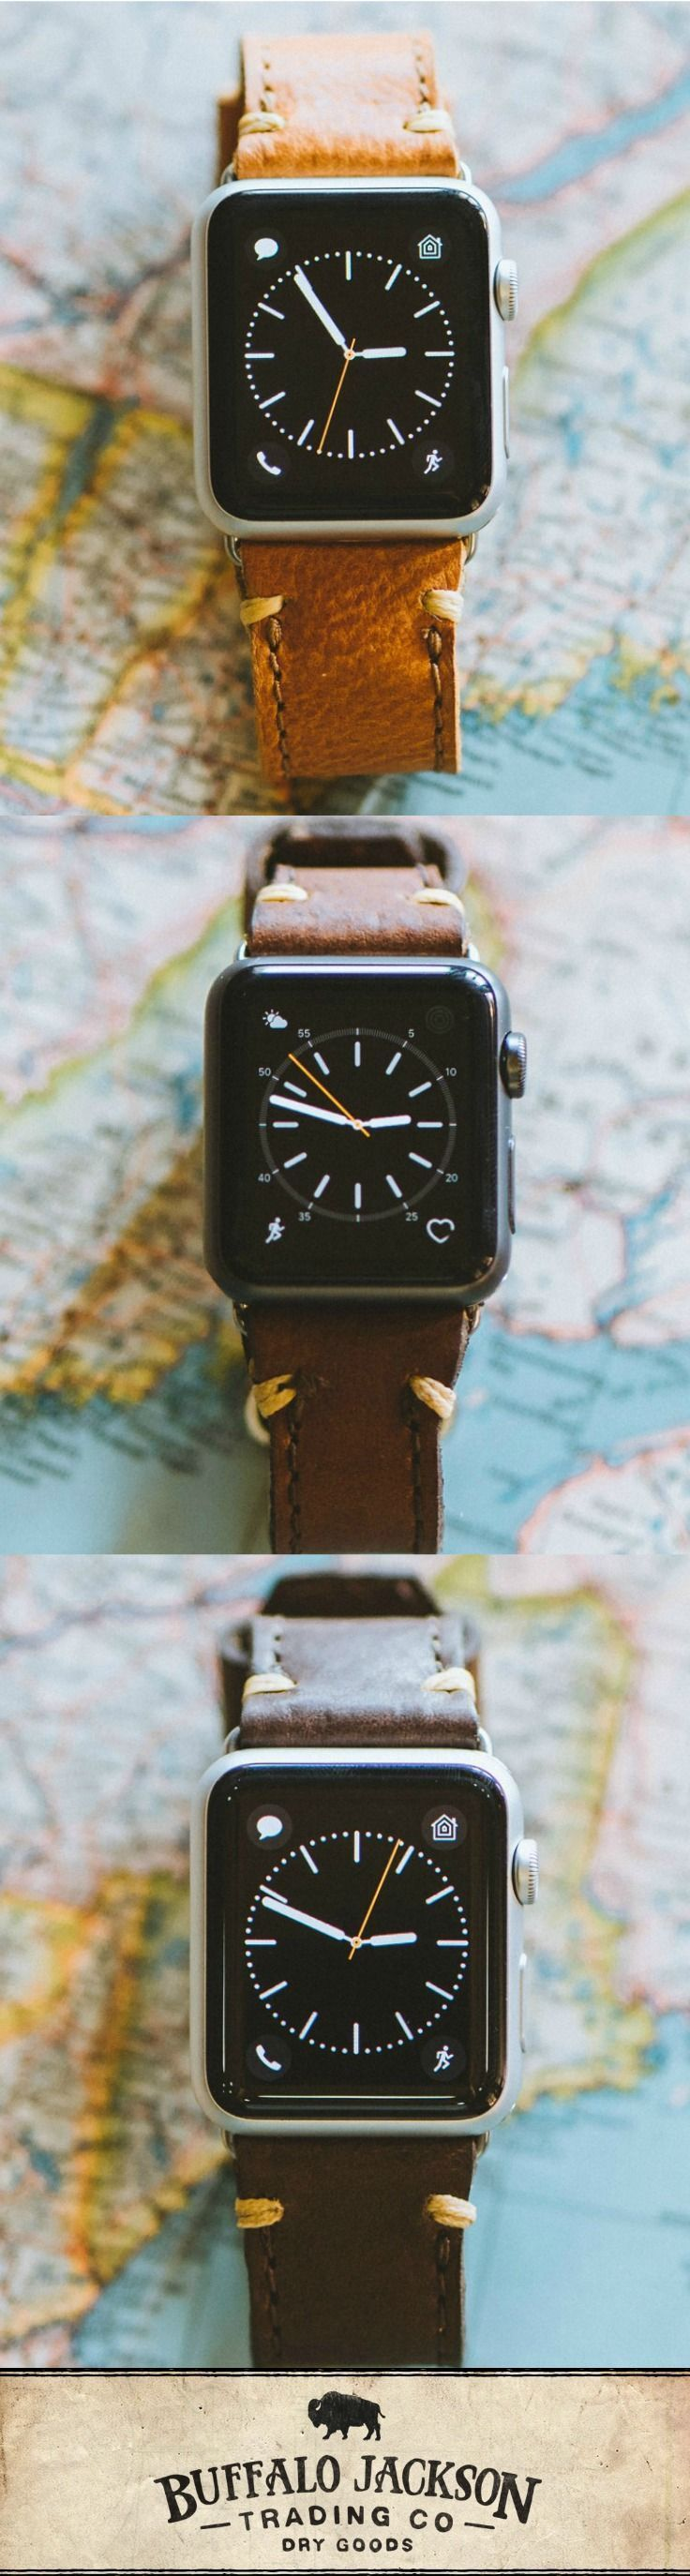 """Bring handmade vintage style to his Apple watch with a quality leather band. Our process tans the leather perfectly for a rugged look and luxury feel. Available in saddle tan, brown, and dark brown, it's one of our favorite men's products right now. This is an Apple watch strap for men who know """"honoring the past"""" doesn't require """"living in the past."""""""